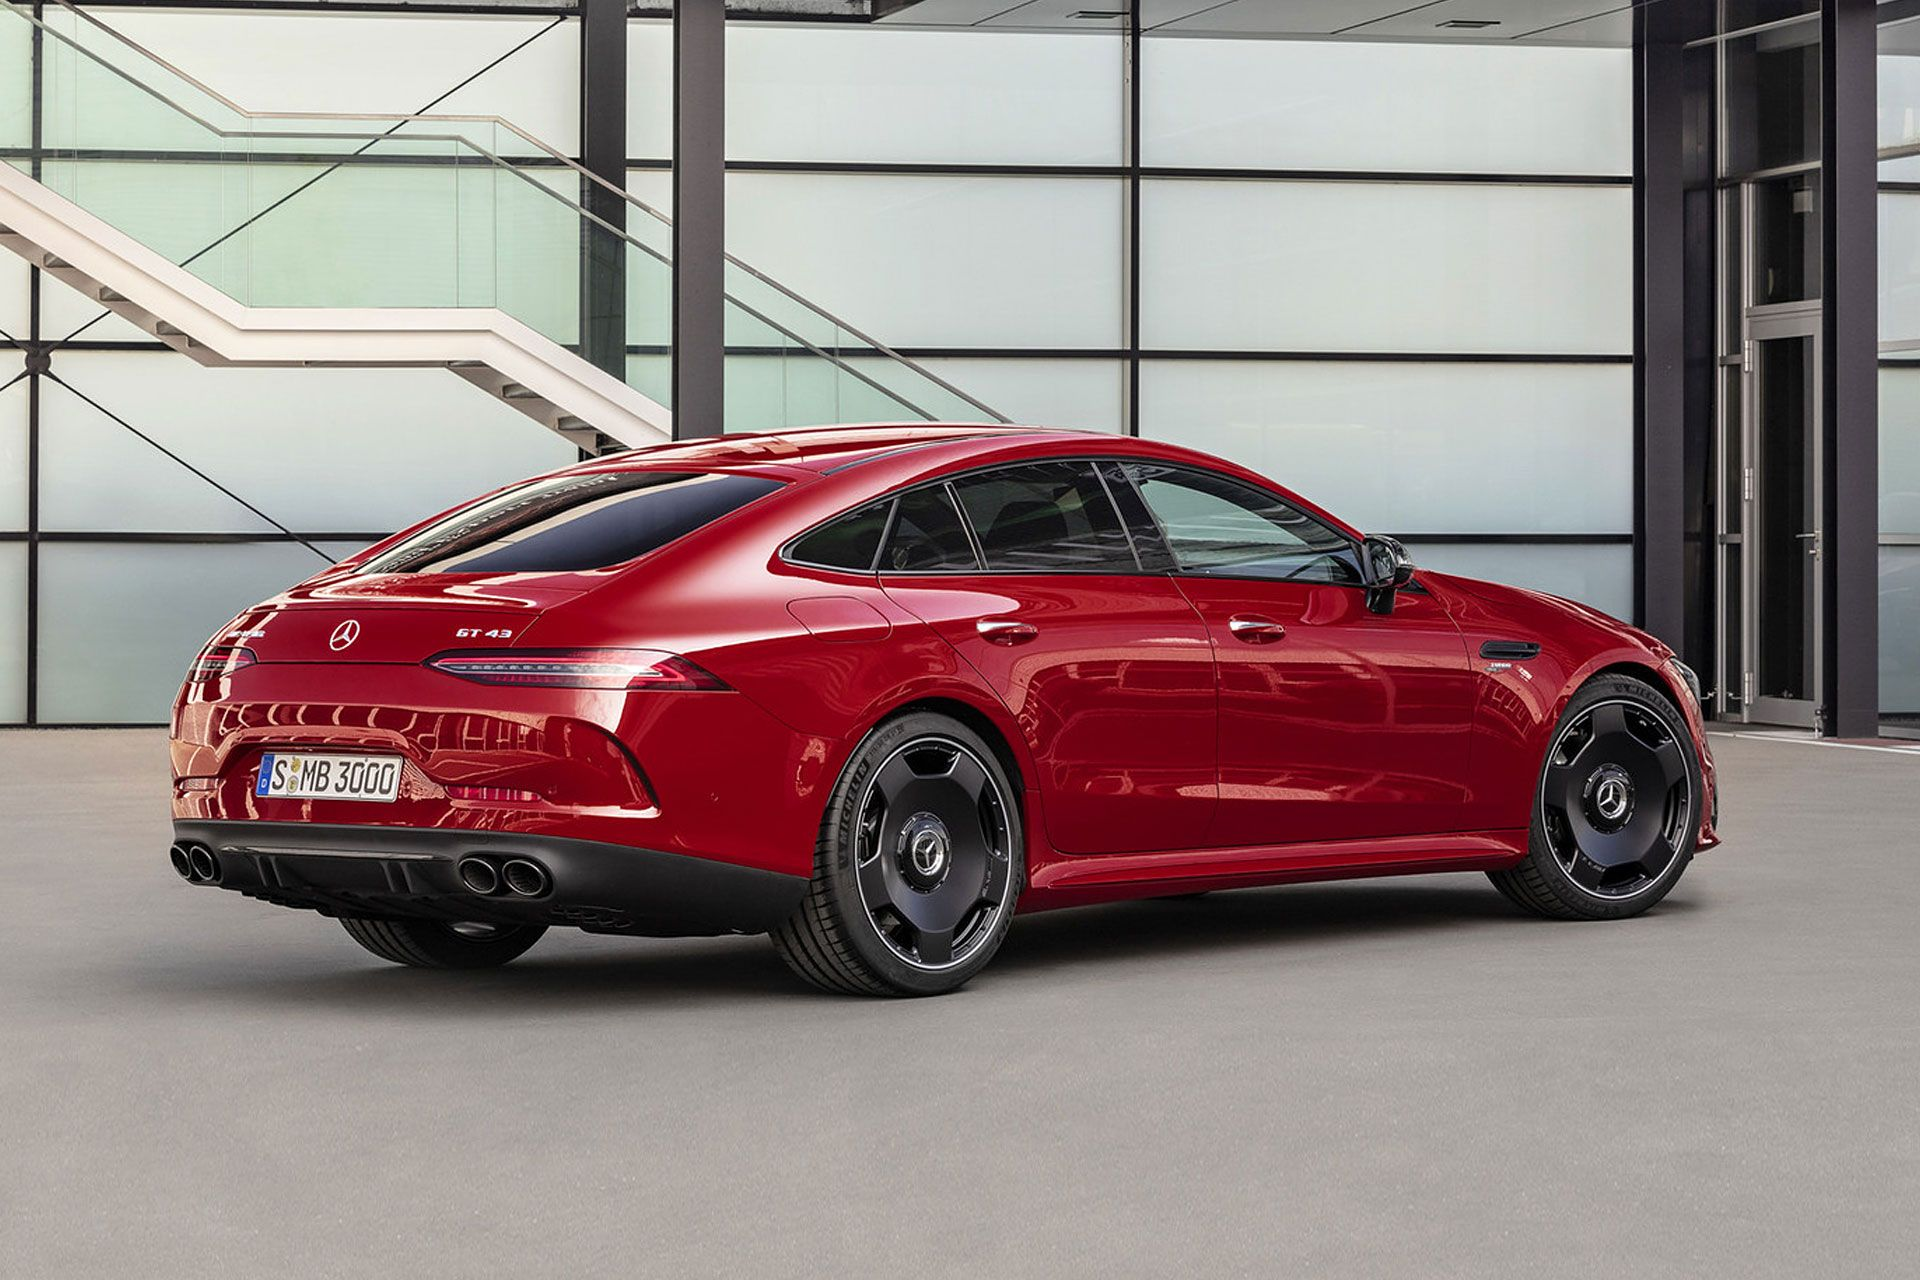 Mercedes Amg Gt 43 4 Door Coupe With Images New Mercedes Amg